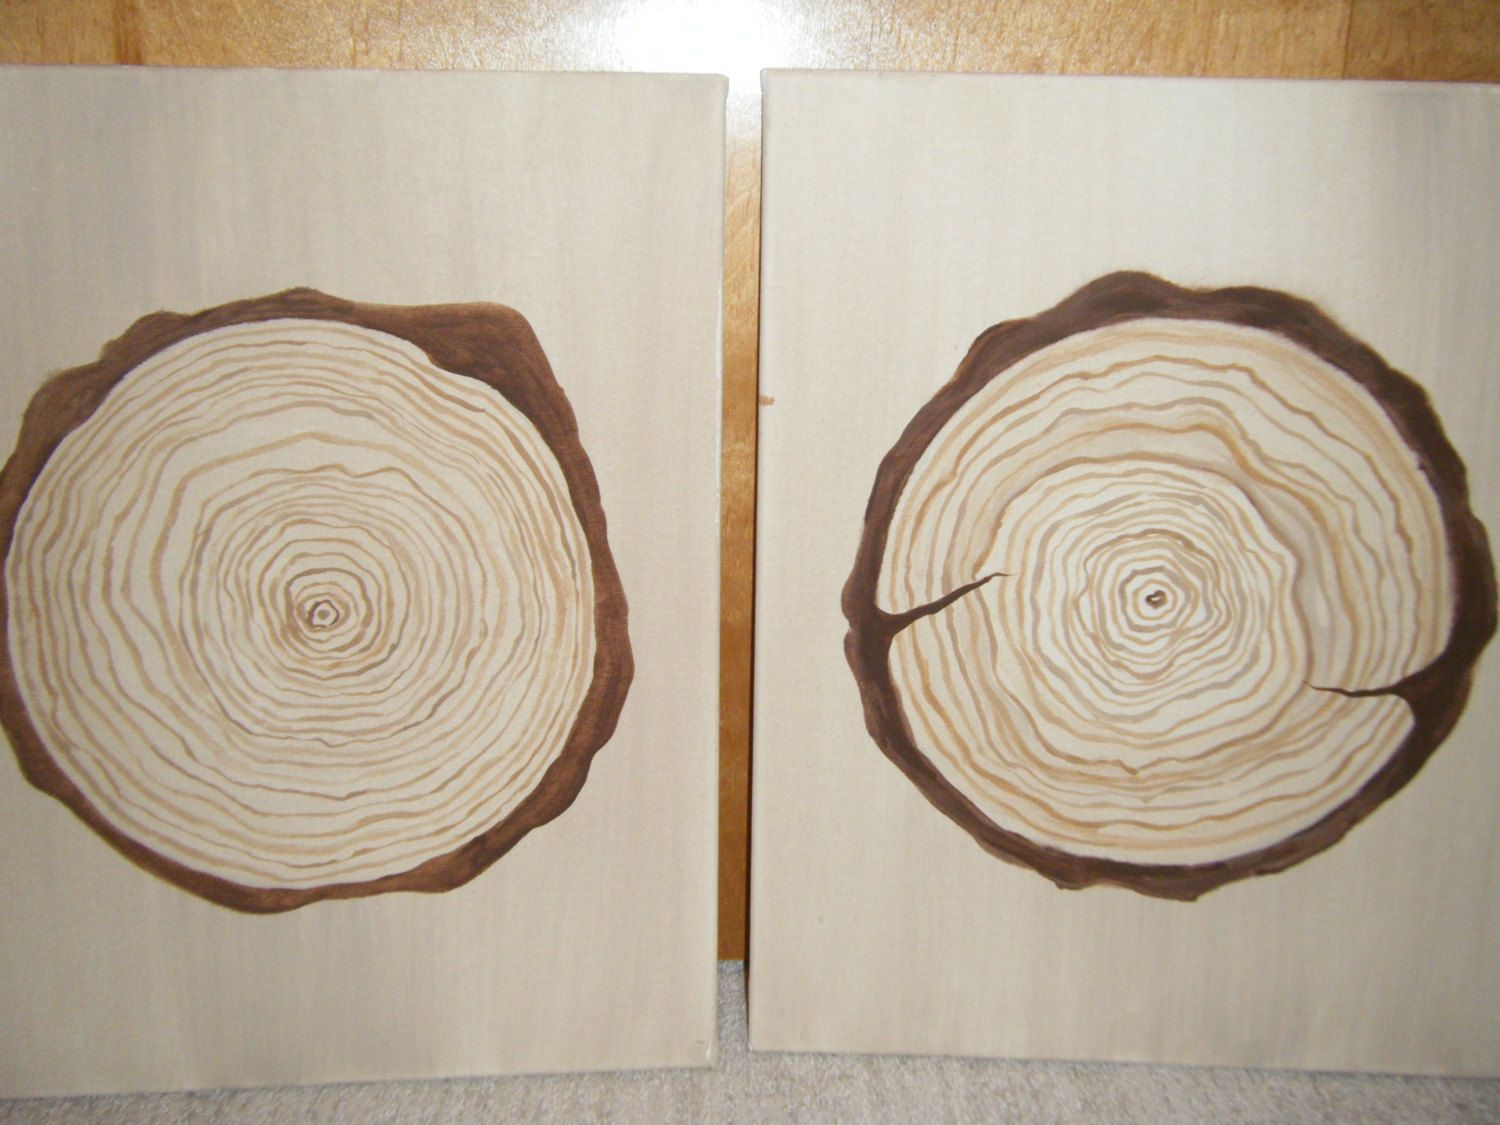 Tree Ring Art Painting Wedding Guest Book Idea by susanssewingstudio on Etsy